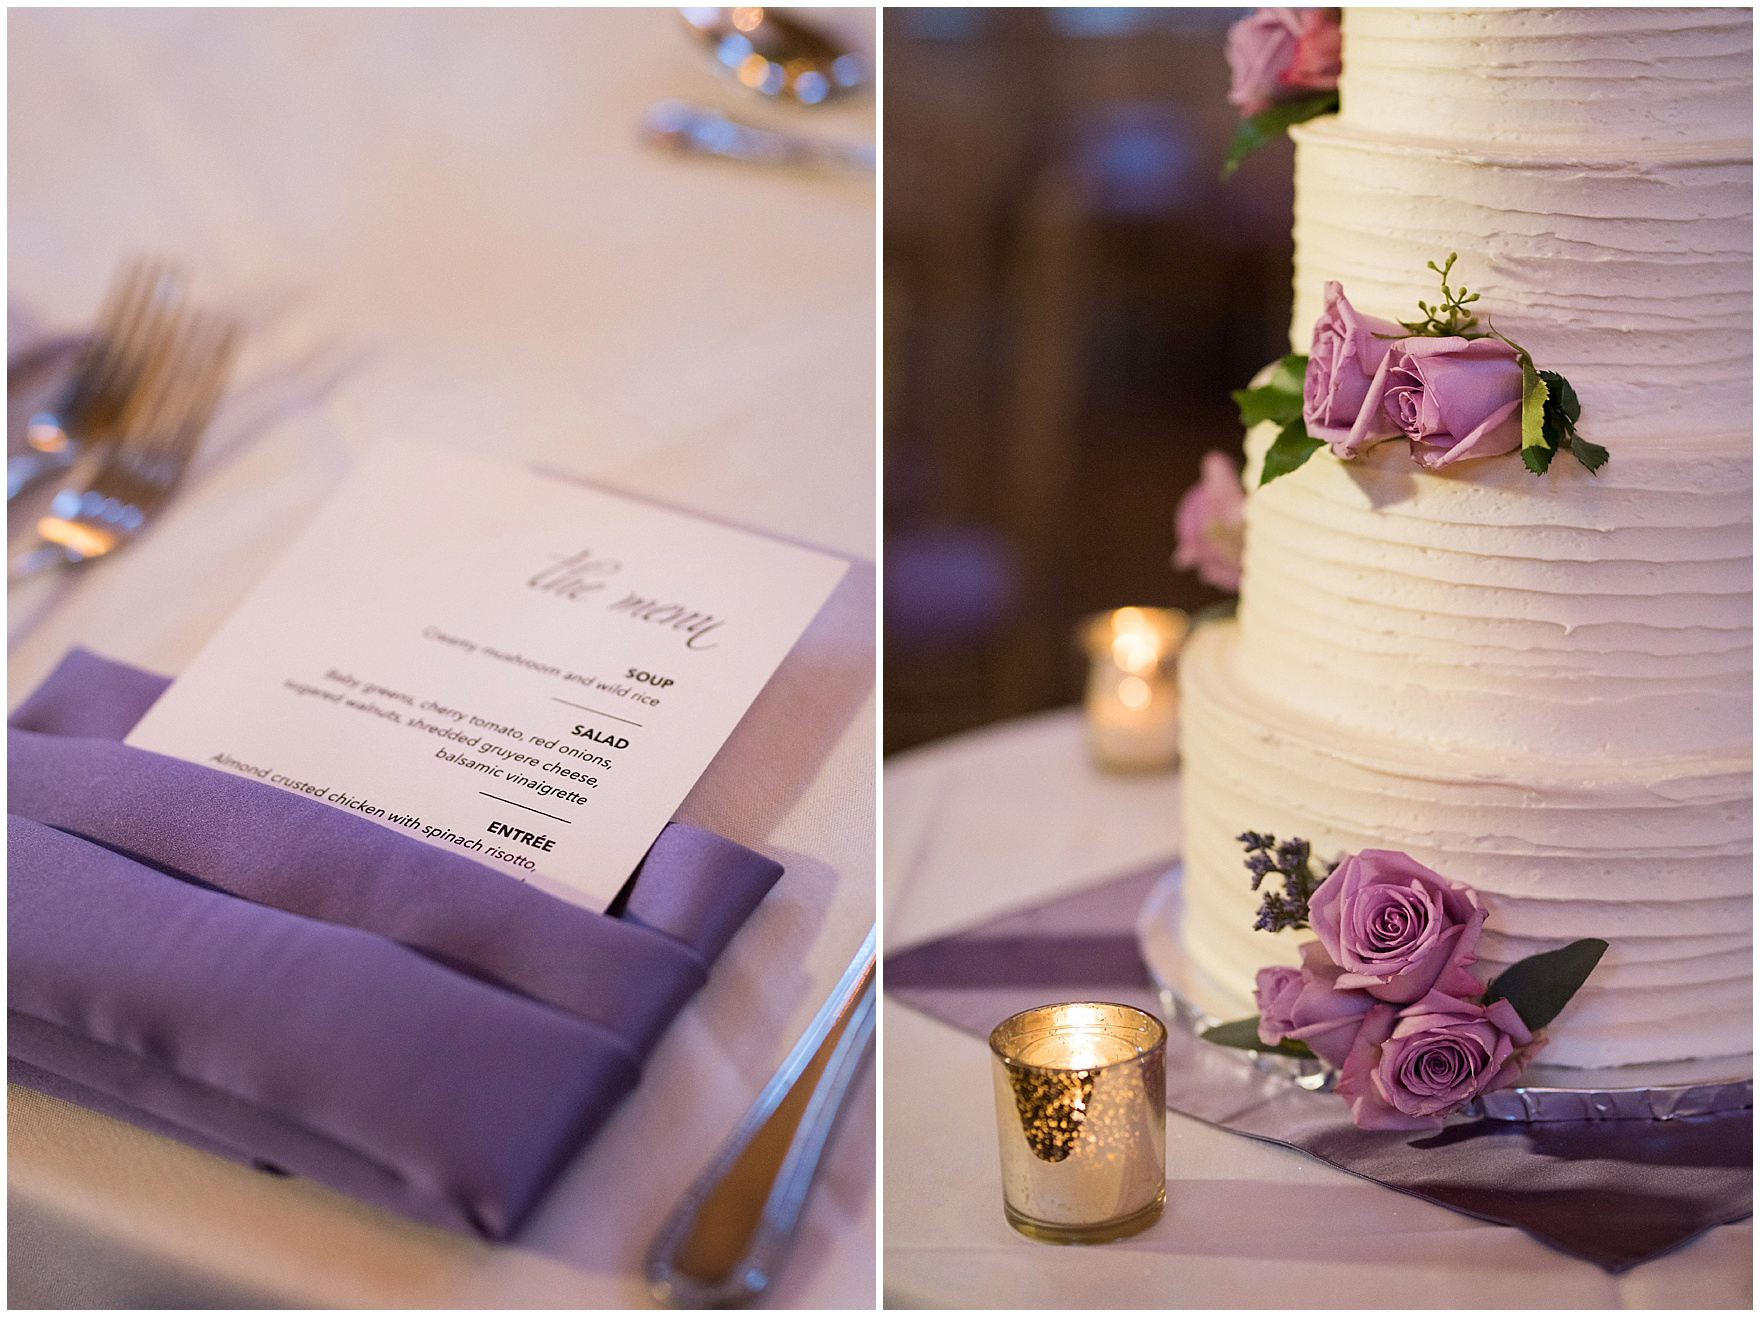 Details of the menu and wedding cake for a Glen Club Glenview Illinois wedding.